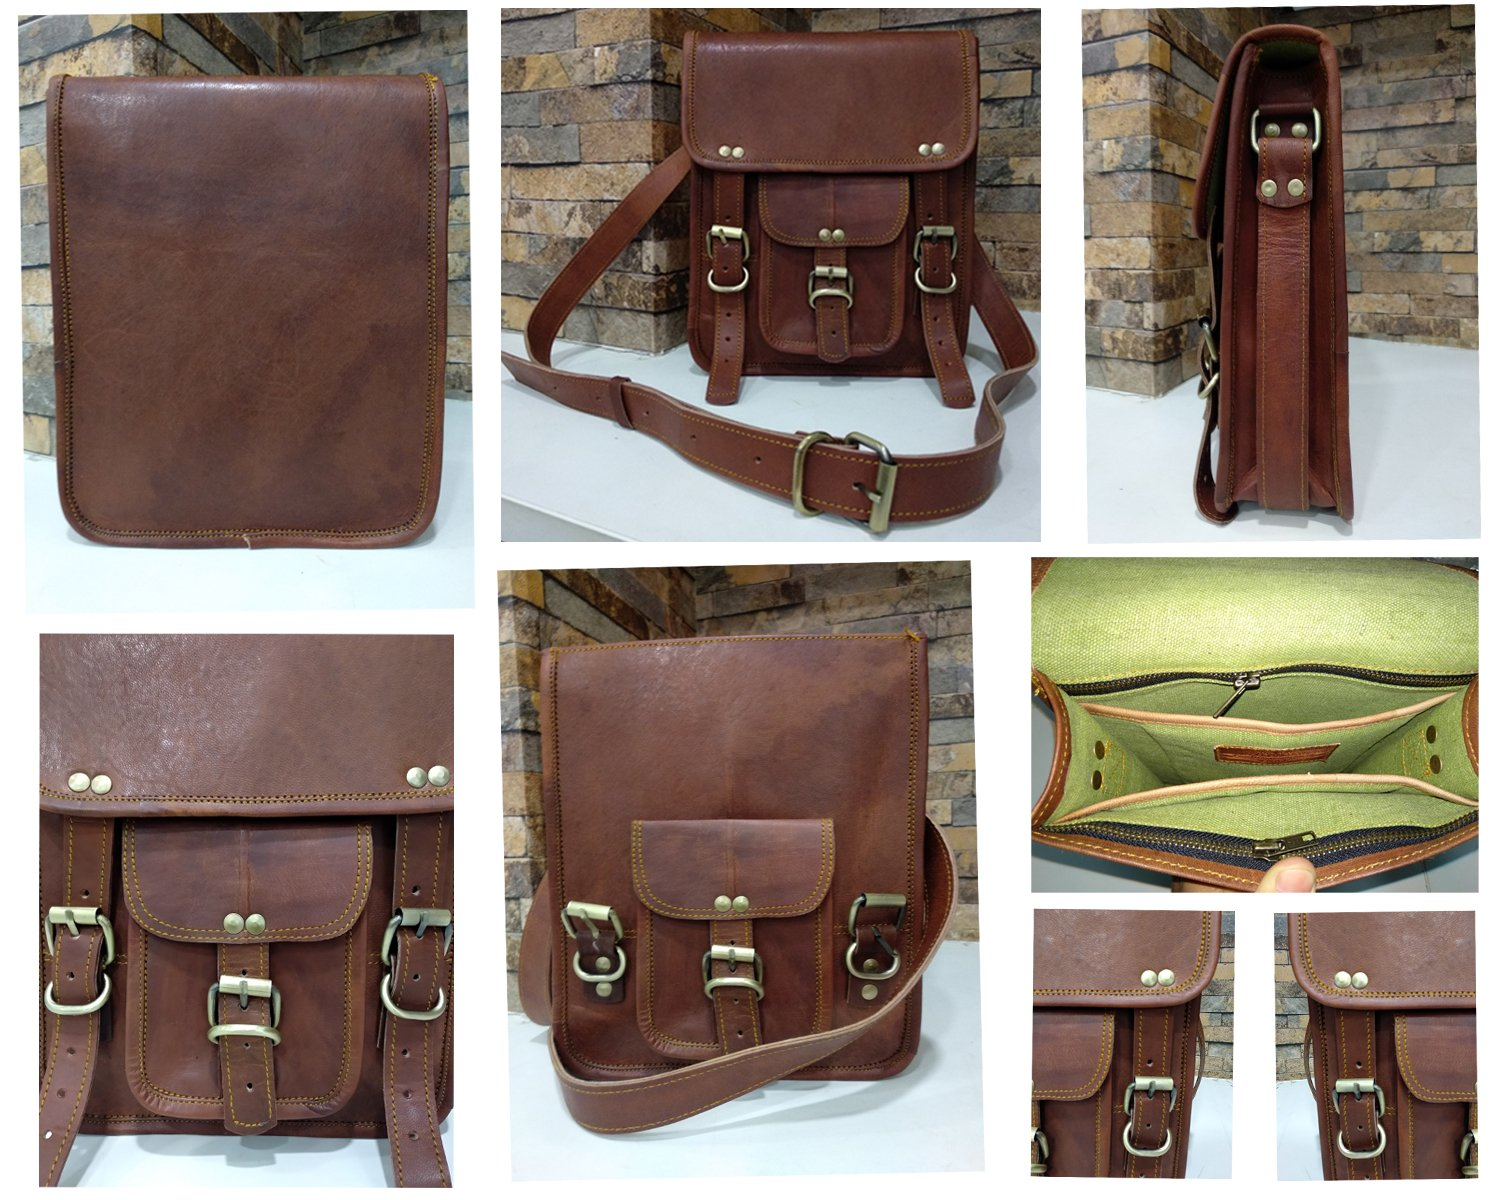 Mother's Day Gift Prime Leather Shoulder Bag Leather Messenger Bag Leather Ipad Bag satchel bag 9x11 by Fair Deal (Image #2)